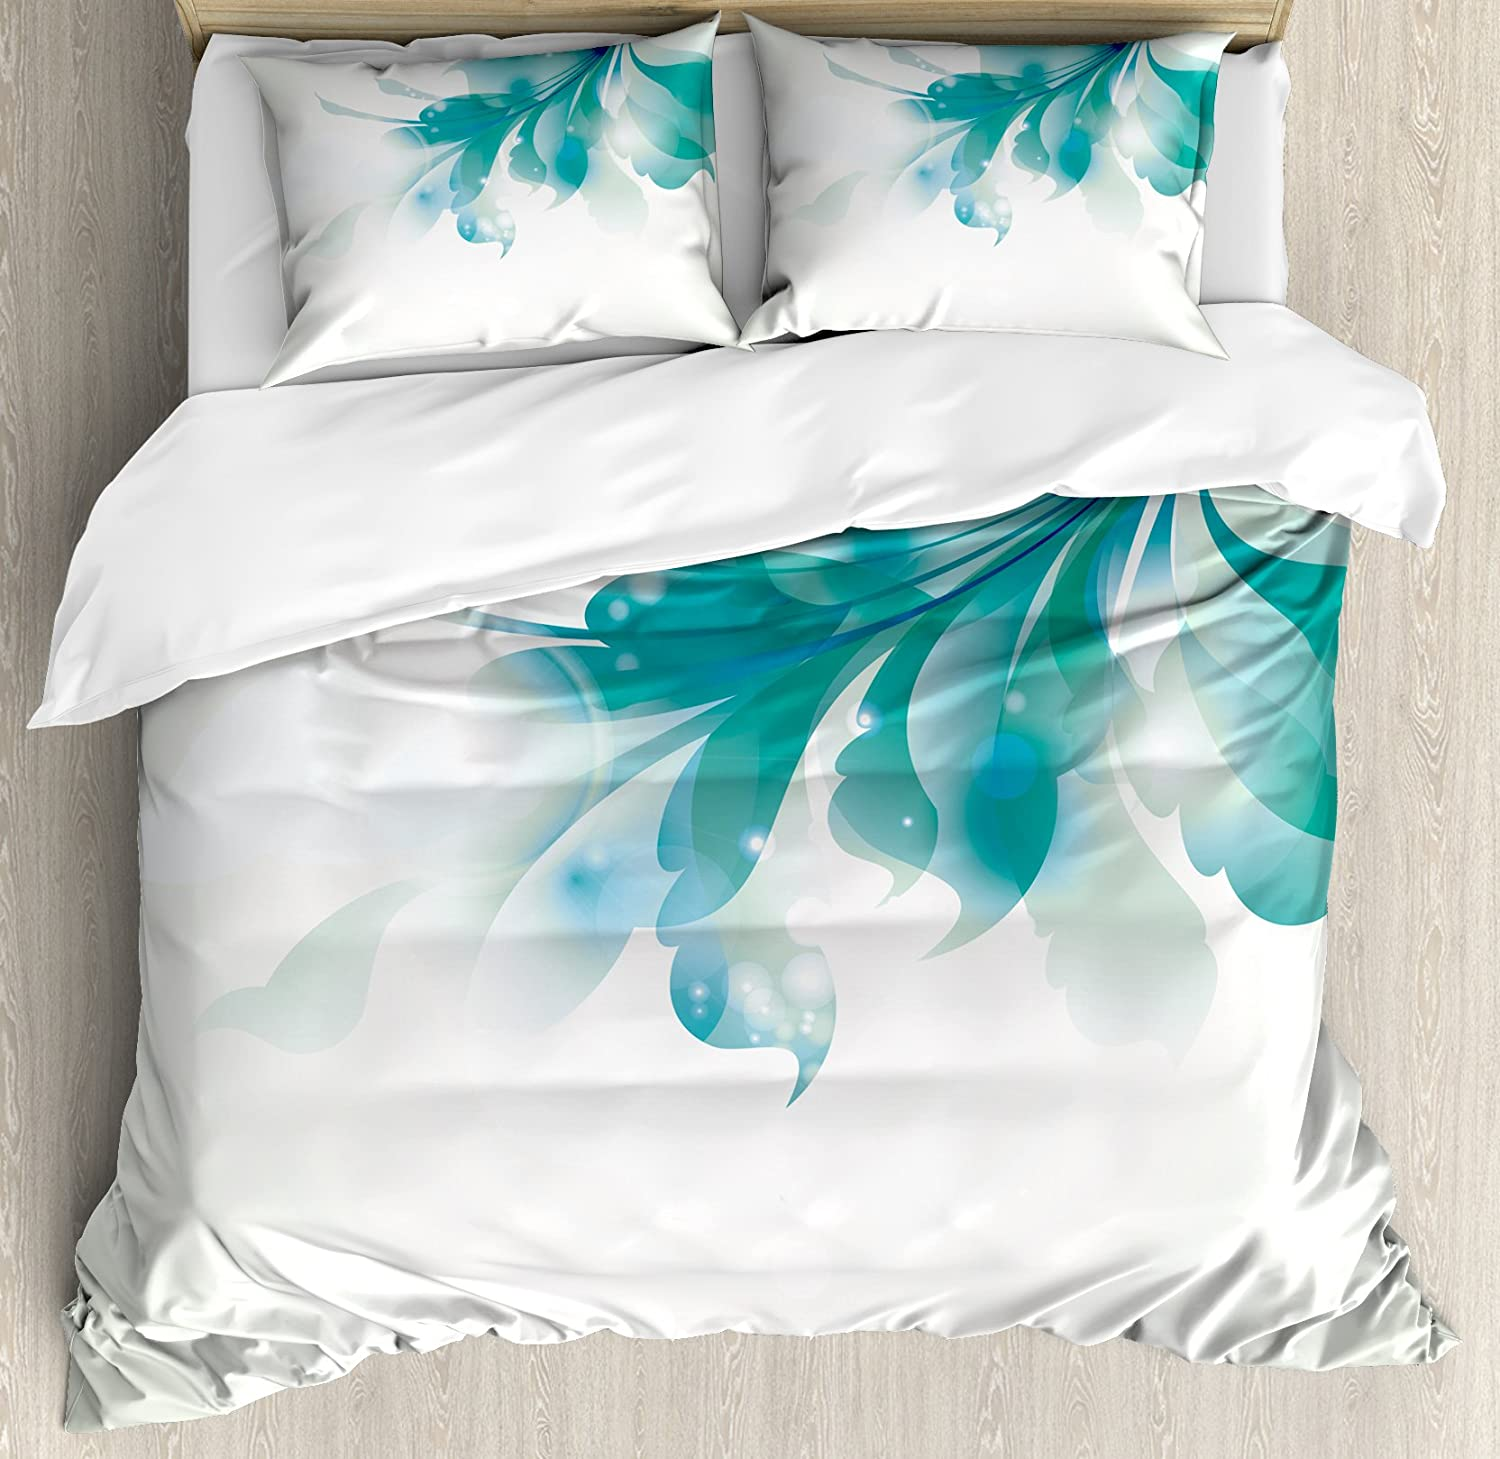 A Decorative 3 Piece Bedding Set with Pillow Shams Watercolor Tropical Island Style Border Print Exotic Fruit Palm Trees and Leaves Theme Multicolor nev/_16780/_queen Ambesonne Pineapple Duvet Cover Set Queen//Full